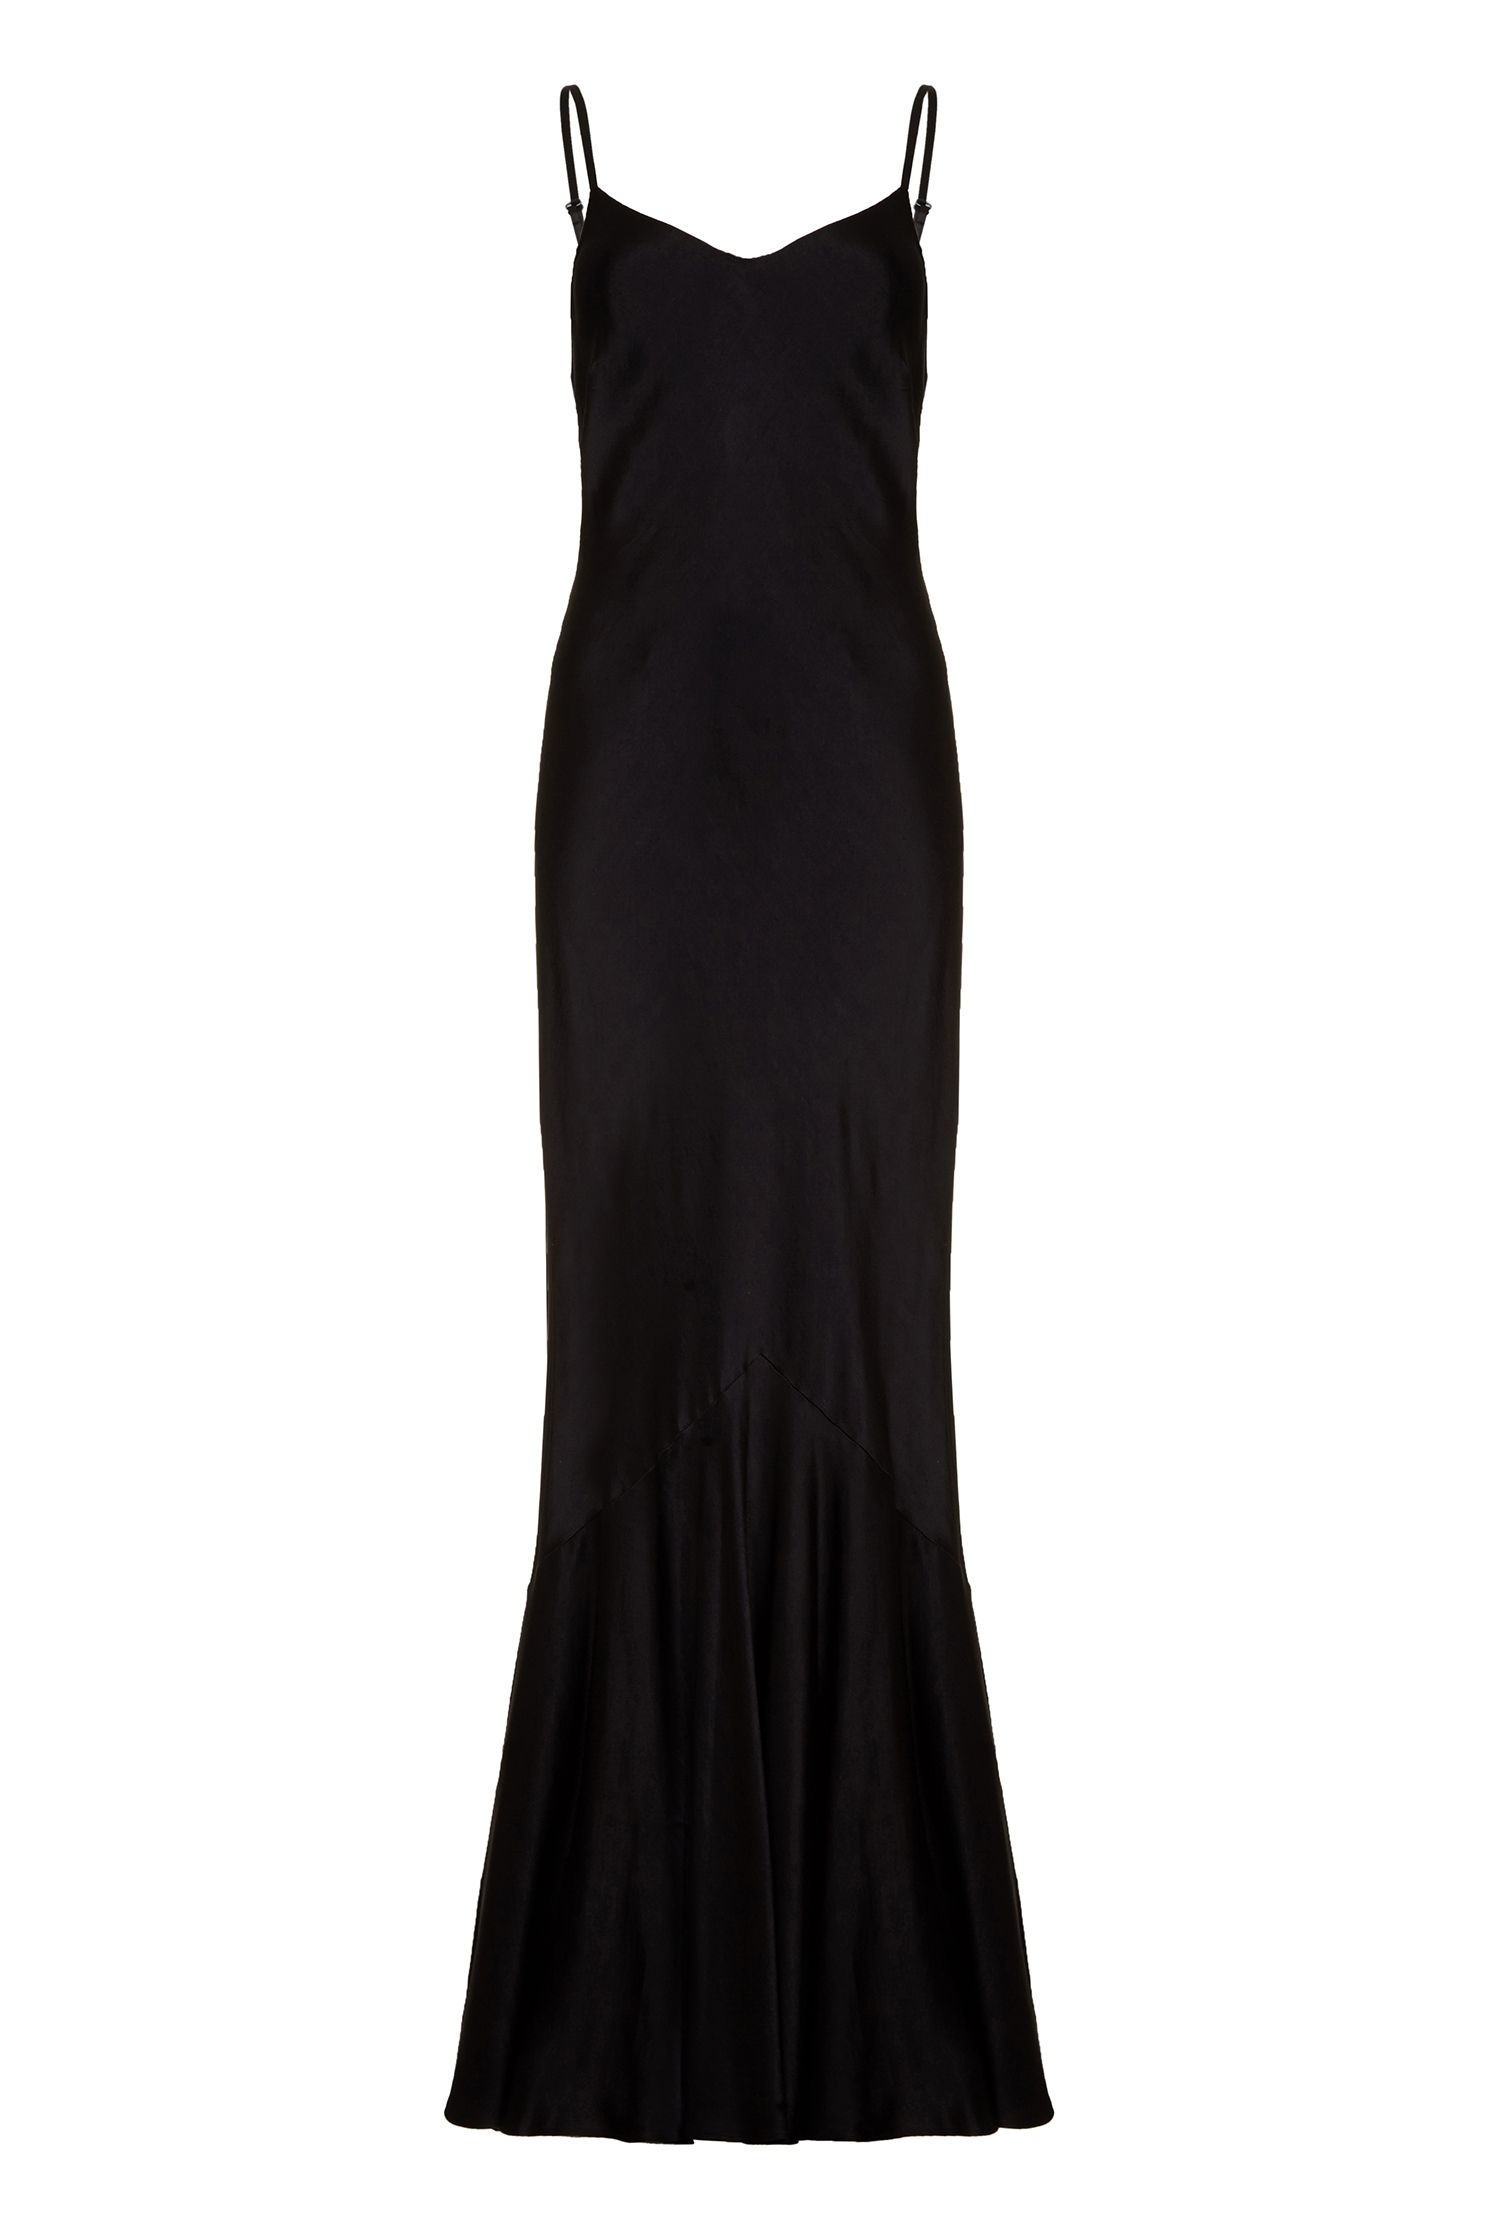 Ghost Bella Dress, Black